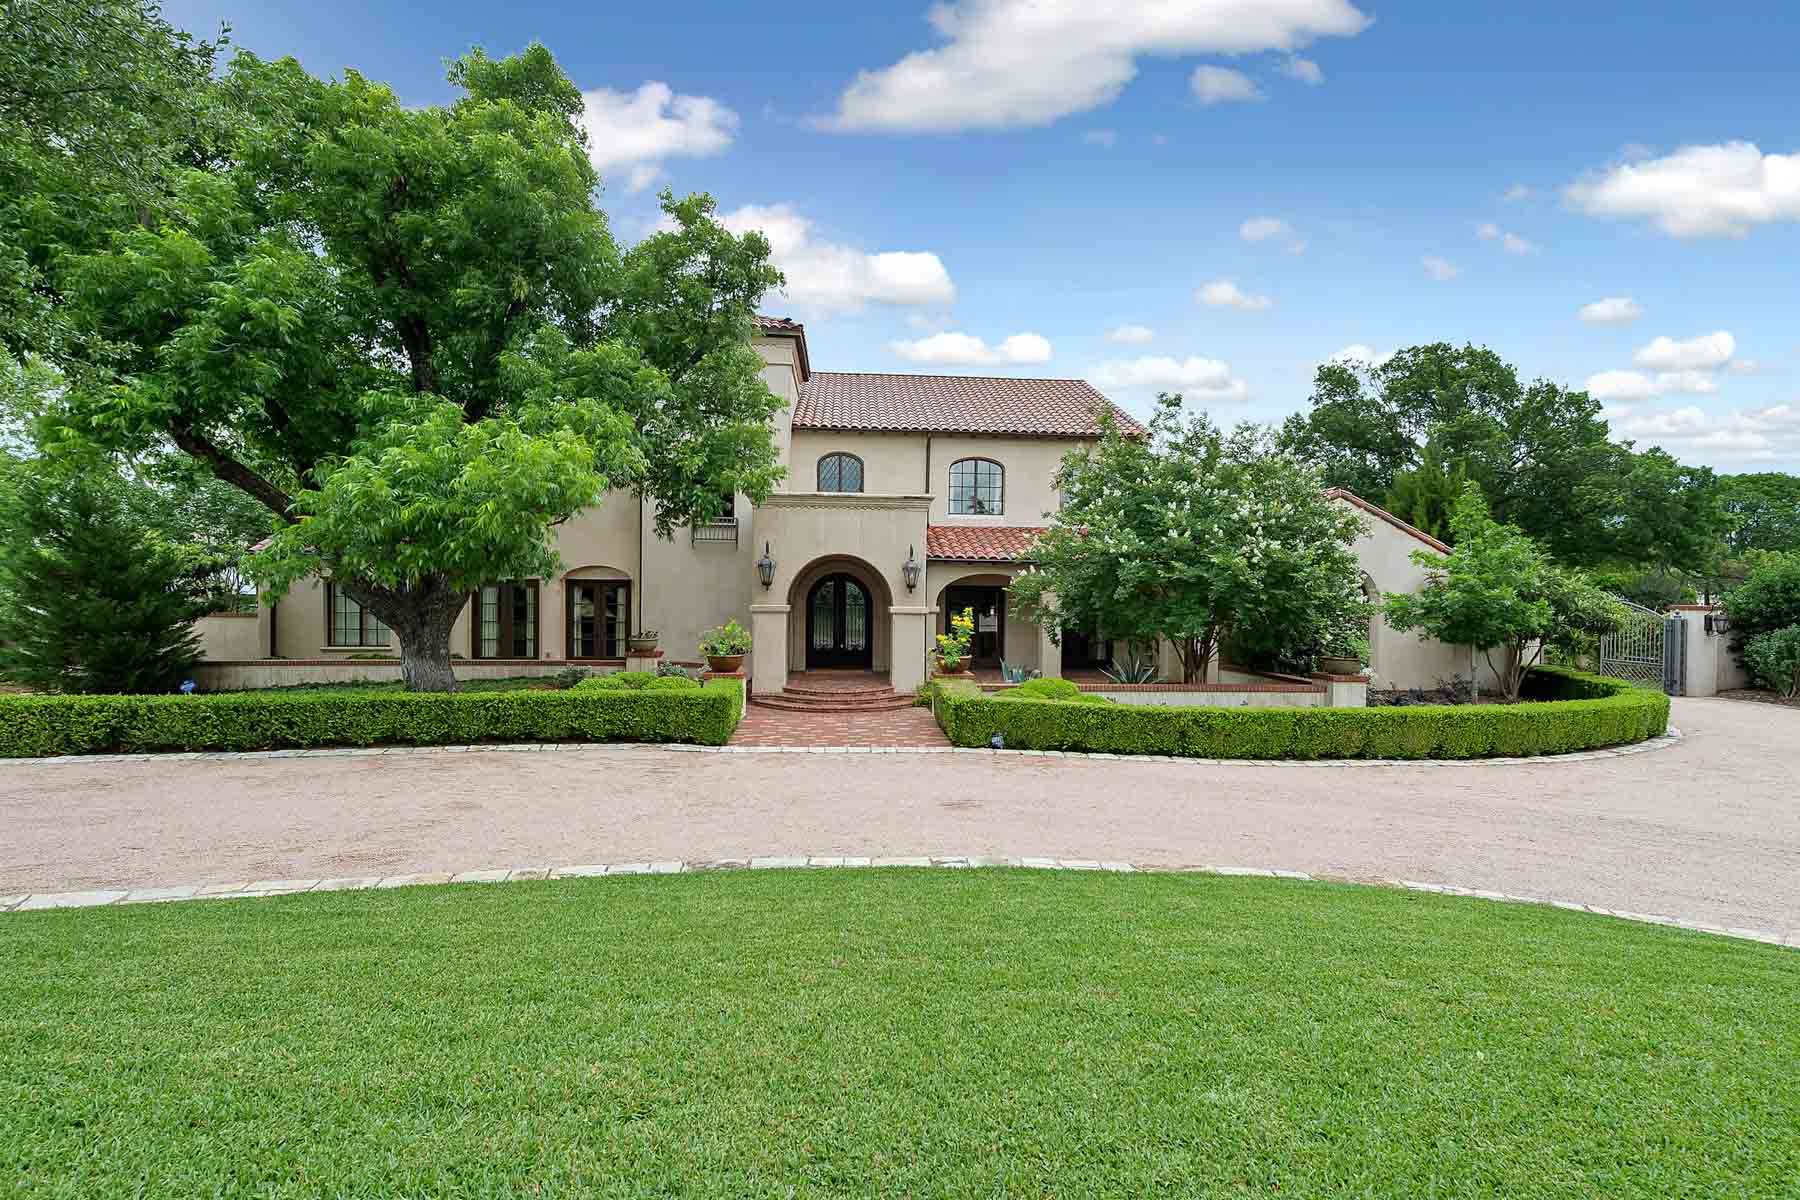 Moradia para Venda às Beautiful Spanish Inspired Fort Worth Home 2017 Four Oaks Fort Worth, Texas, 76107 Estados Unidos